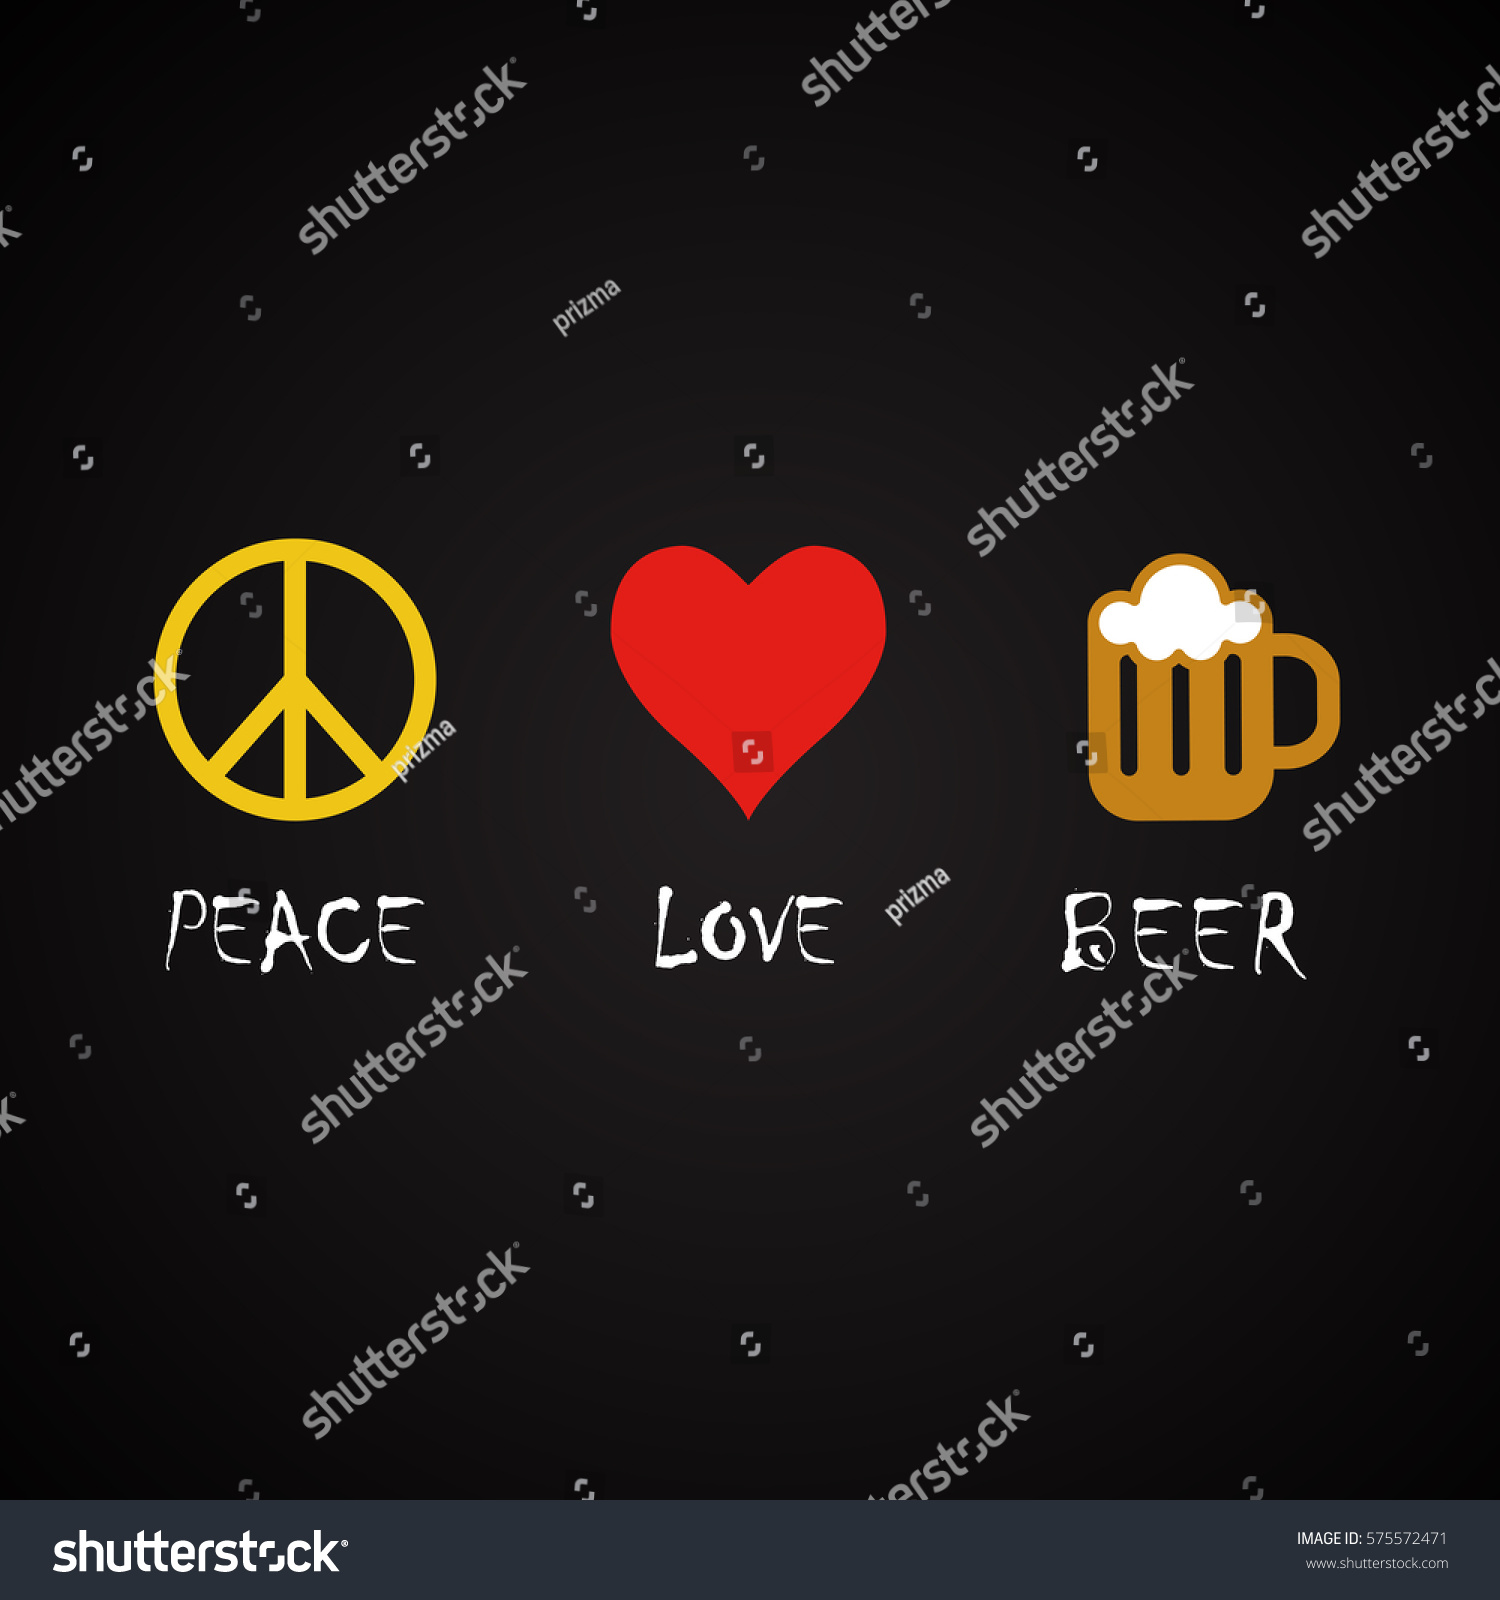 Funny Beer Quotes | Peace Love Beer Funny Alcohol Quotes Stock Vector Royalty Free